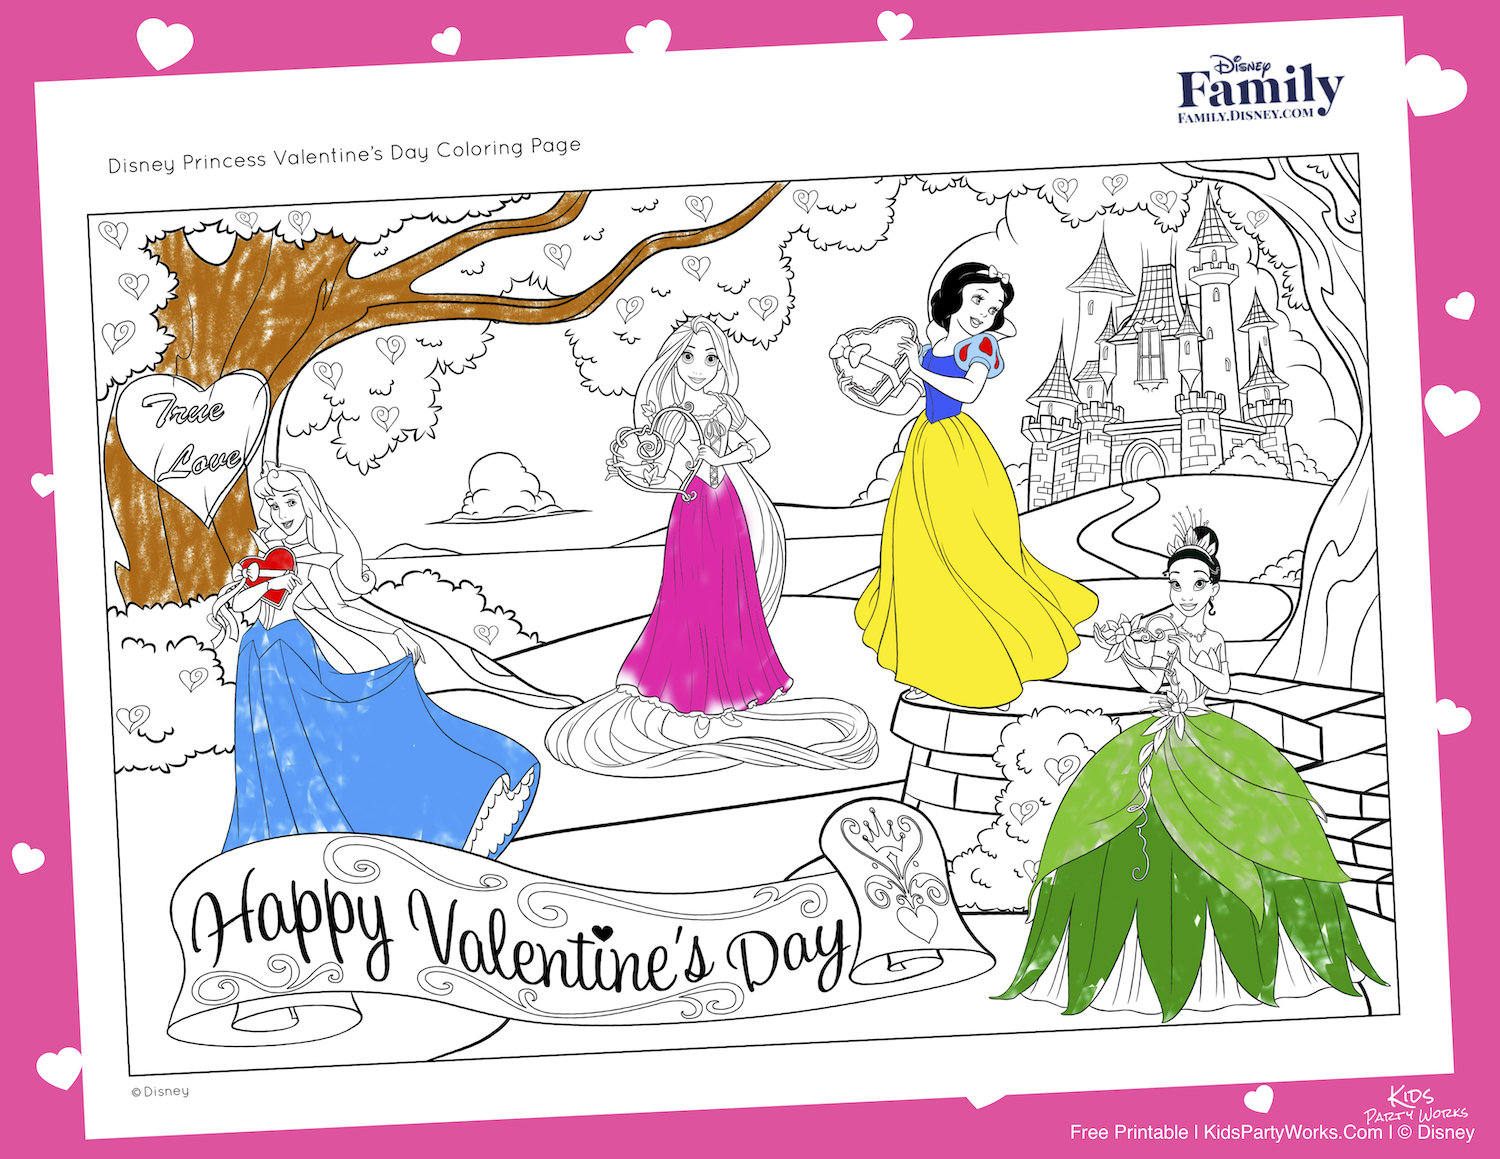 Disney Princess Valentines Coloring Page. Visit KidsPartyWorks.Com for lots of kids free printables.